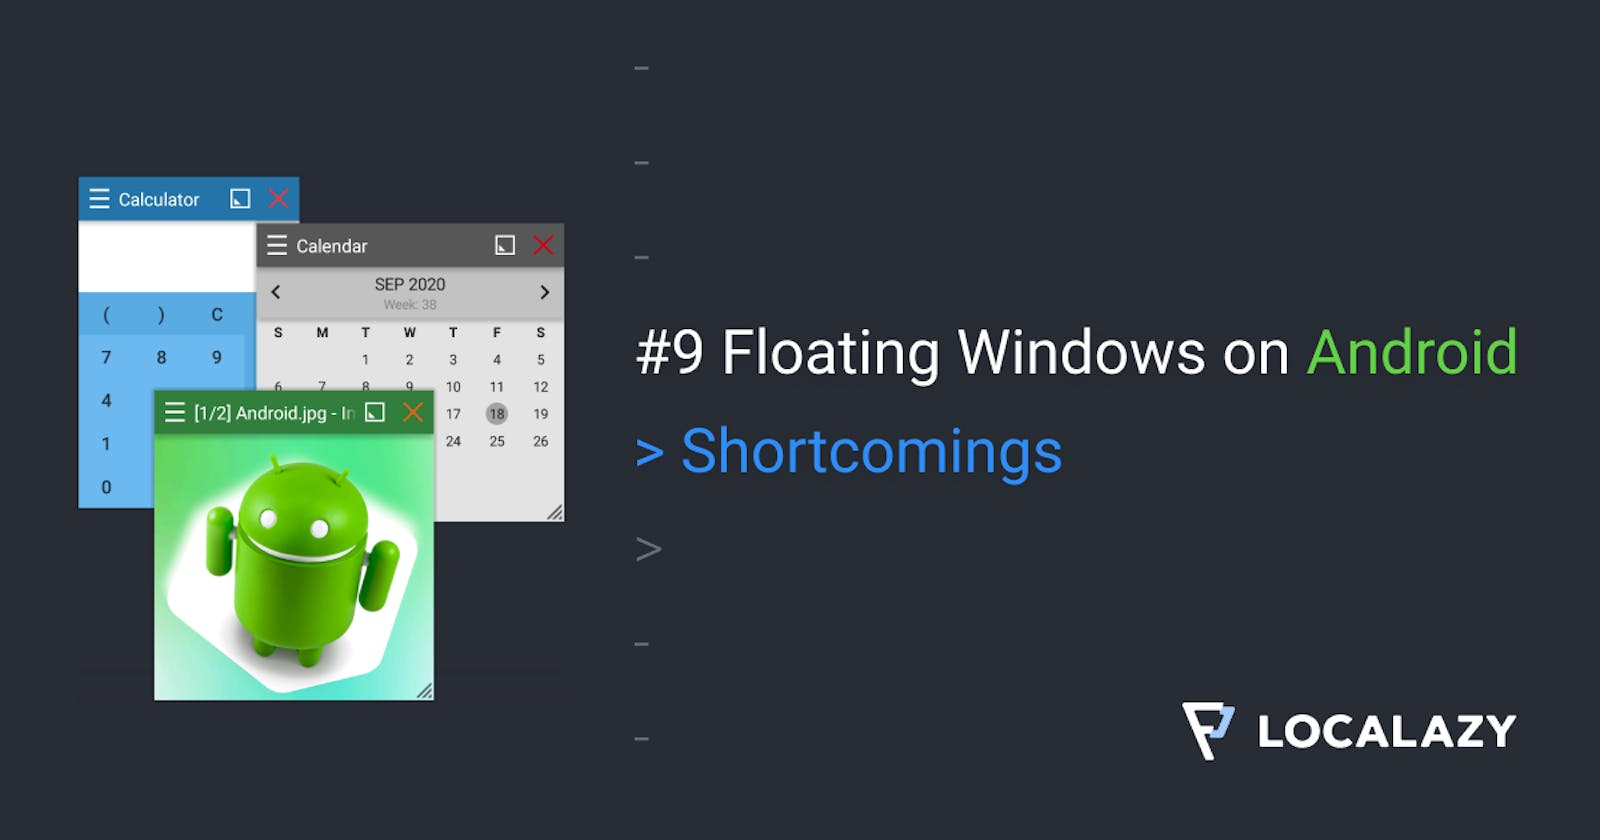 Shortcomings of floating windows on Android